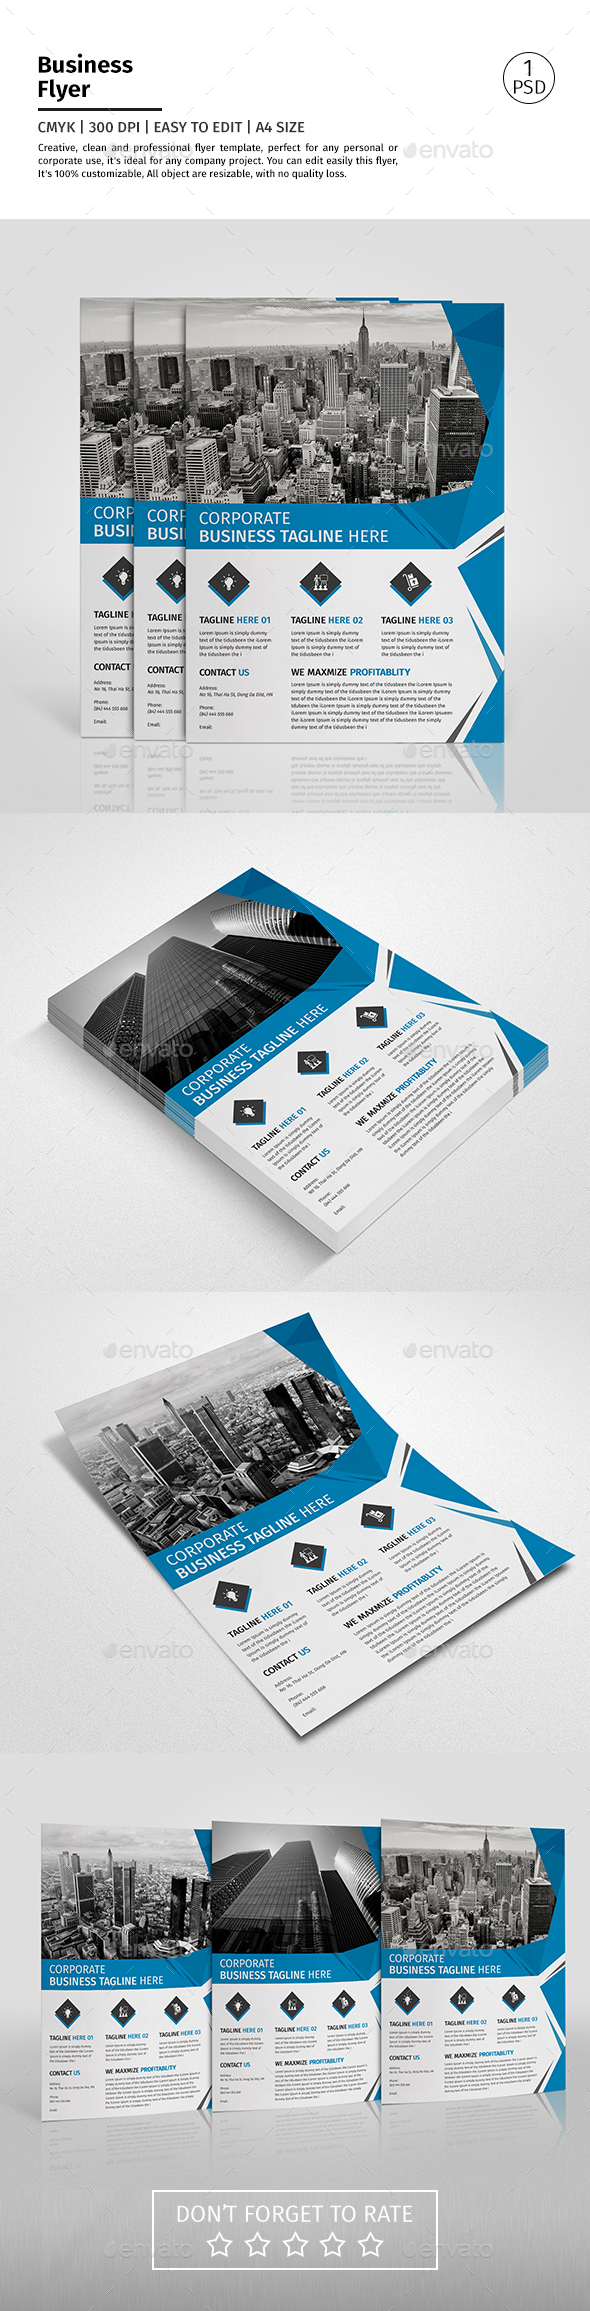 A4 Corporate Business Flyer Template Vol 09 - Corporate Flyers